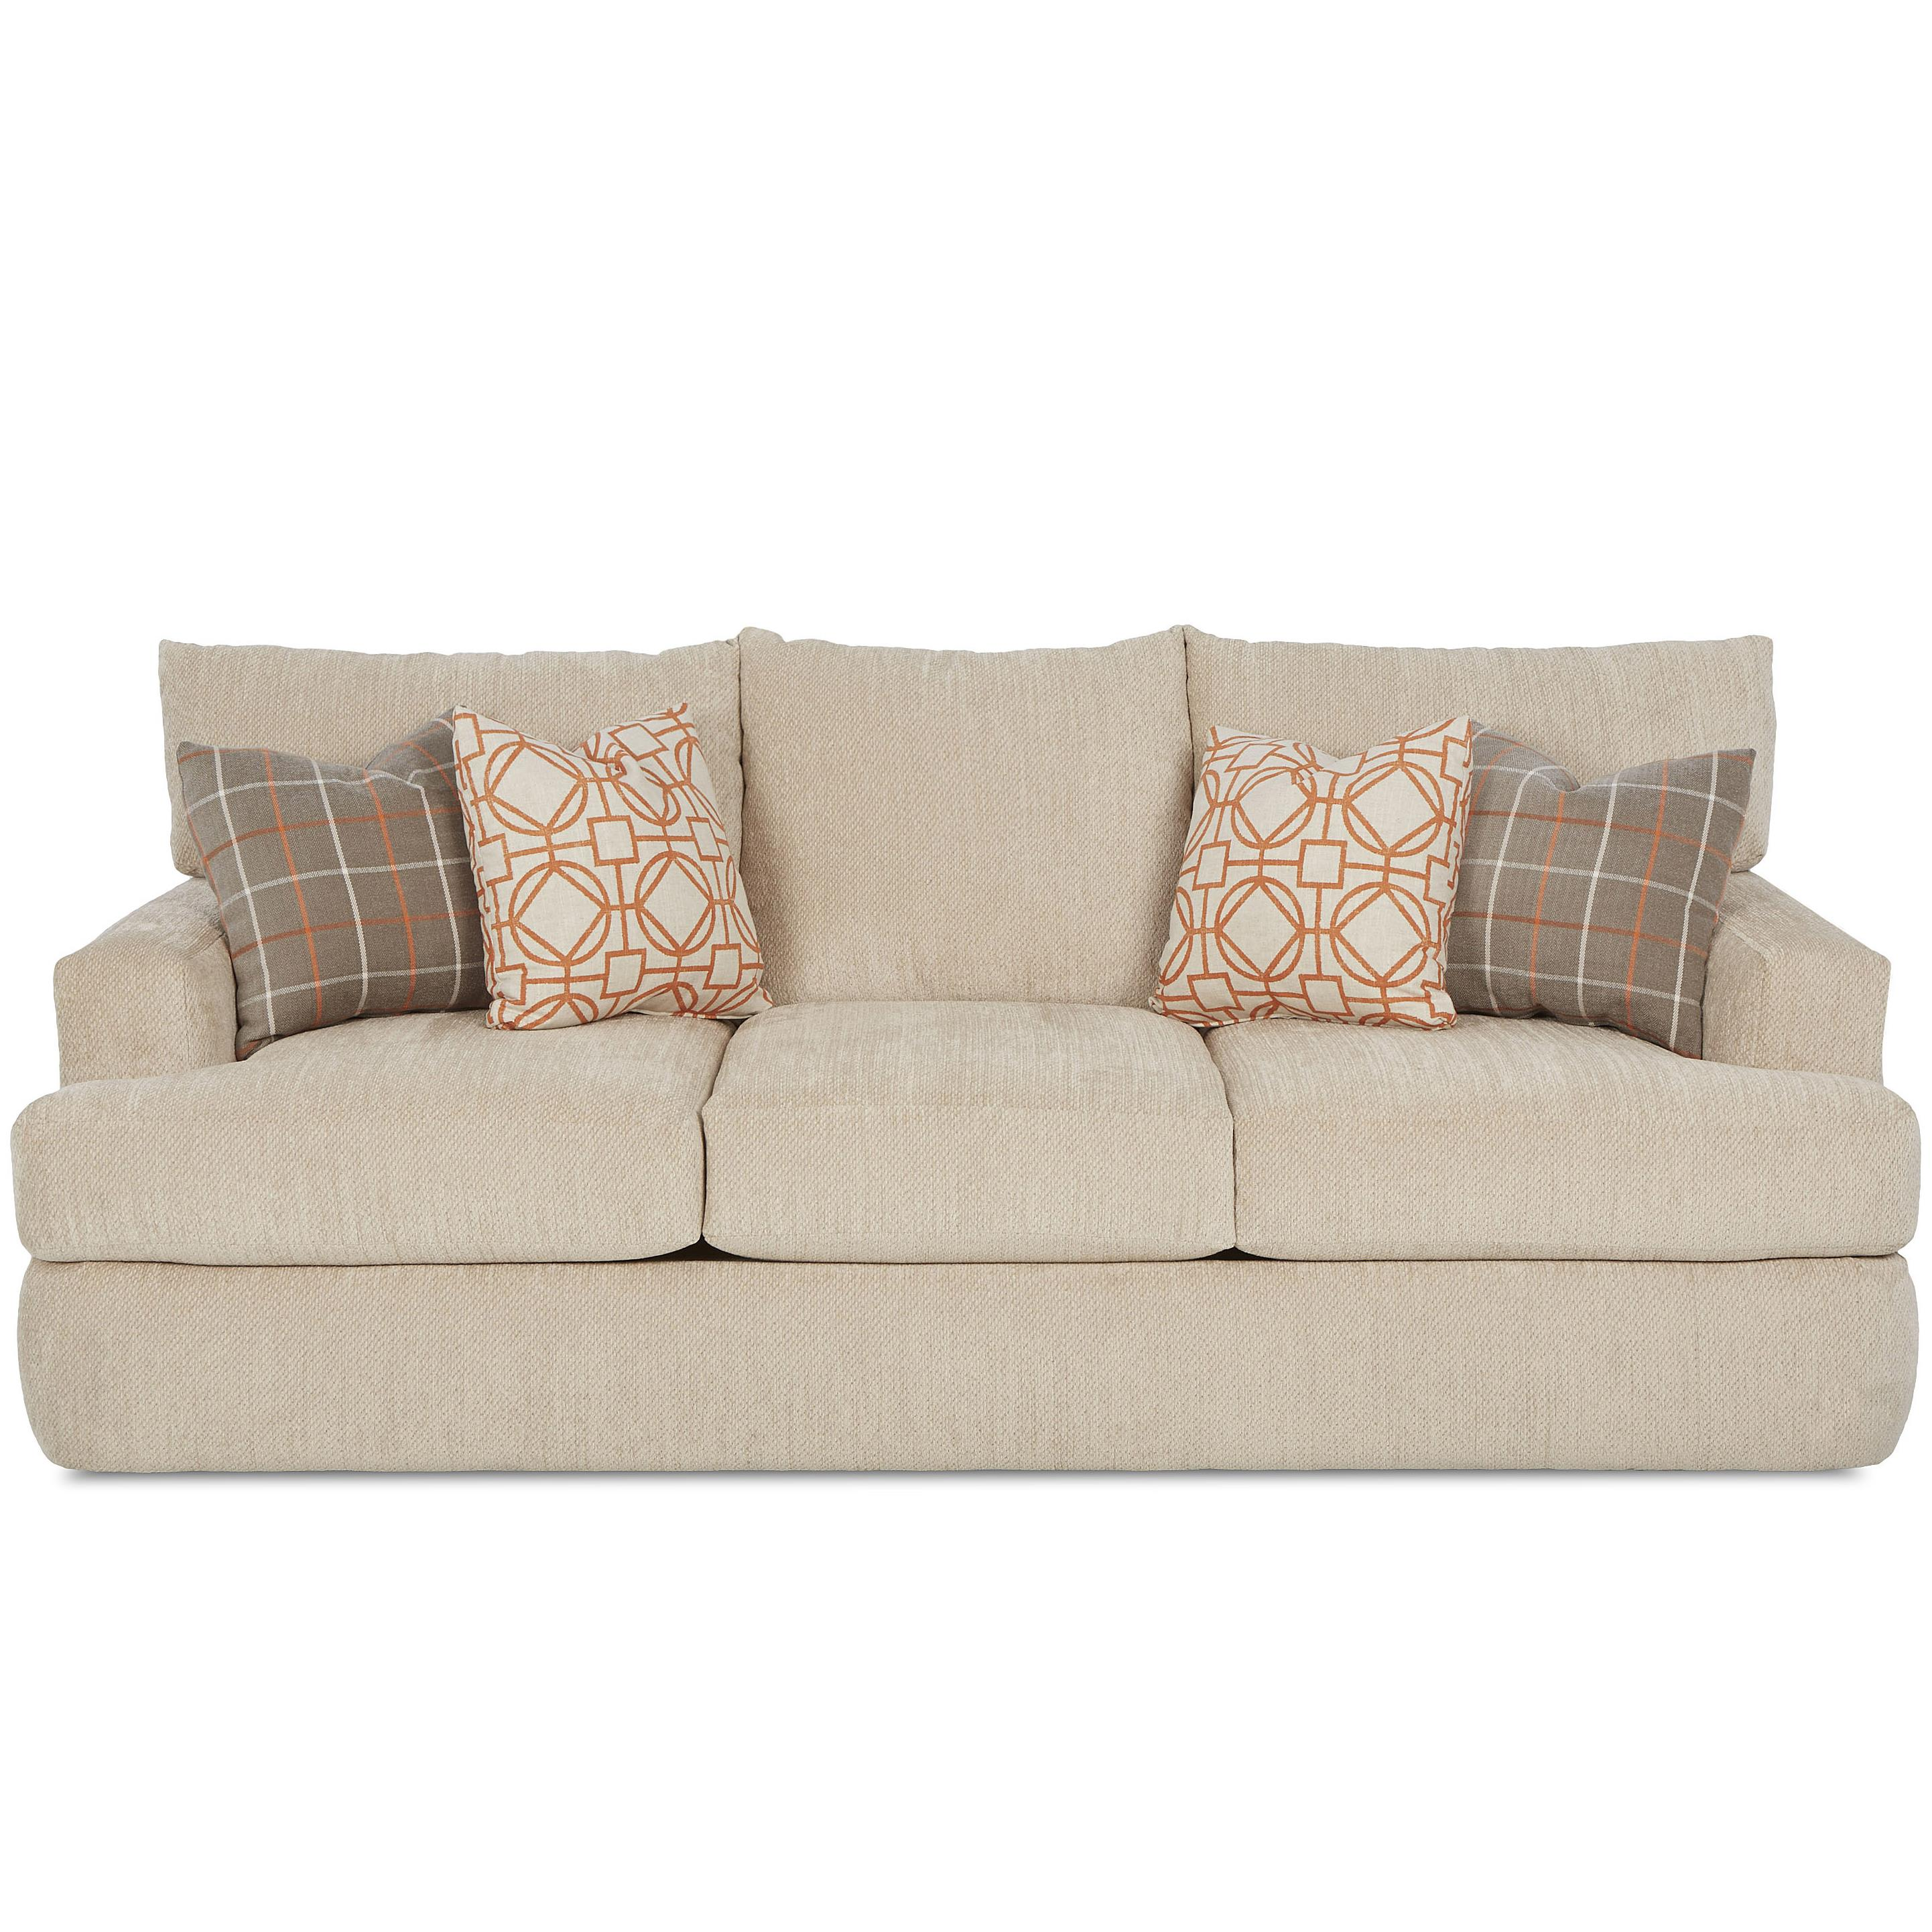 Klaussner Oliver Contemporary Sofa - Item Number: K41400 S - JessieOatmeal